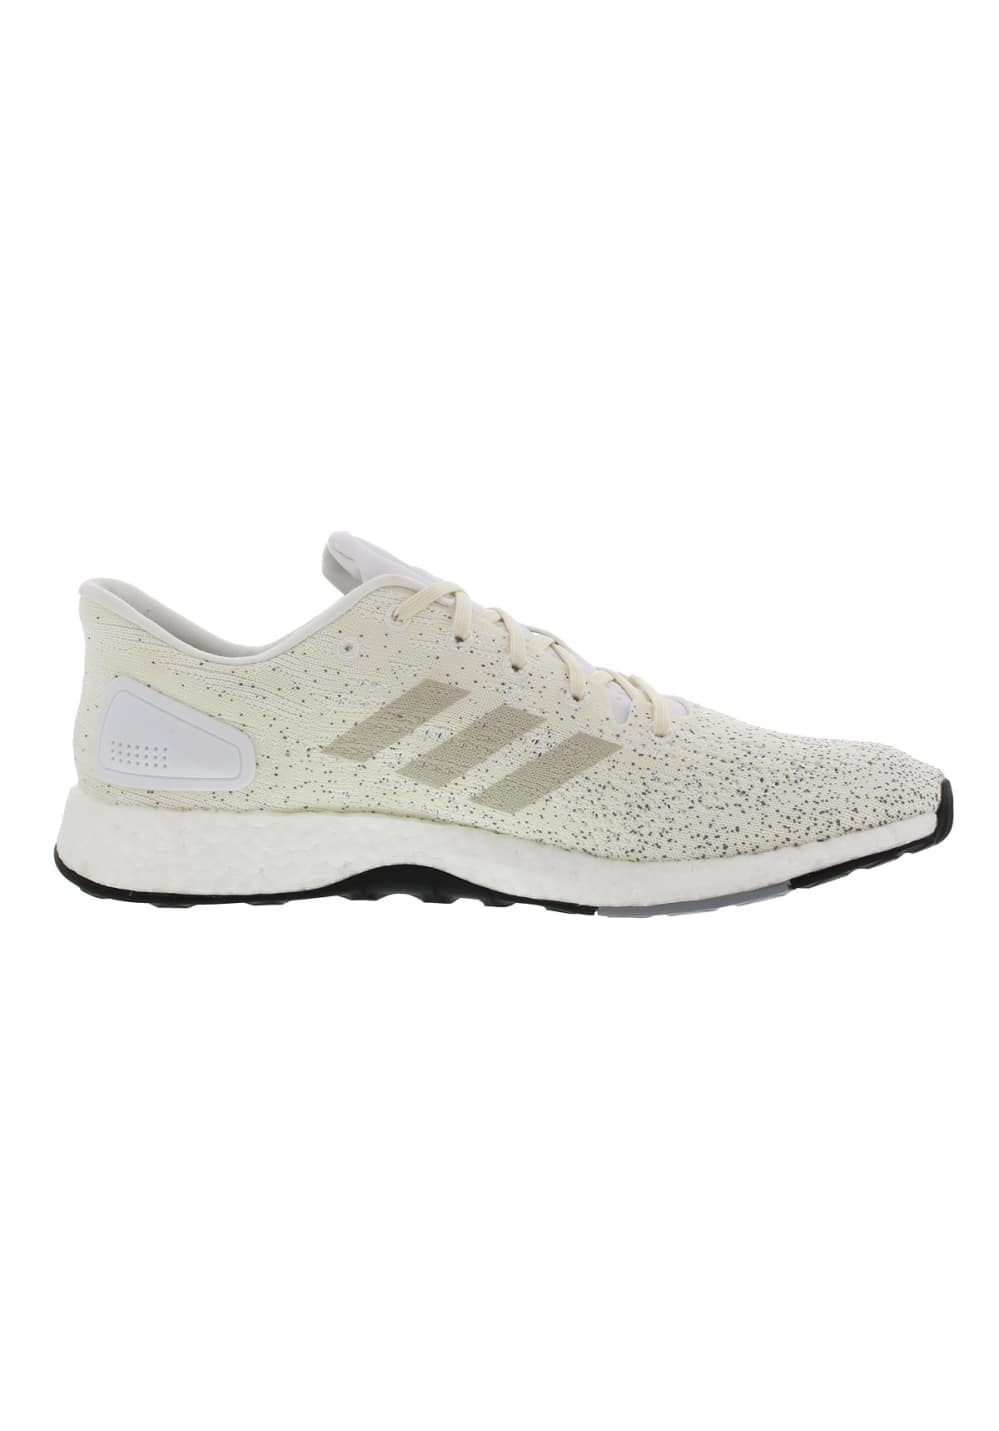 6d4b2f4ea Previous. Next. -32%. adidas. Pureboost Dpr - Running shoes for Men